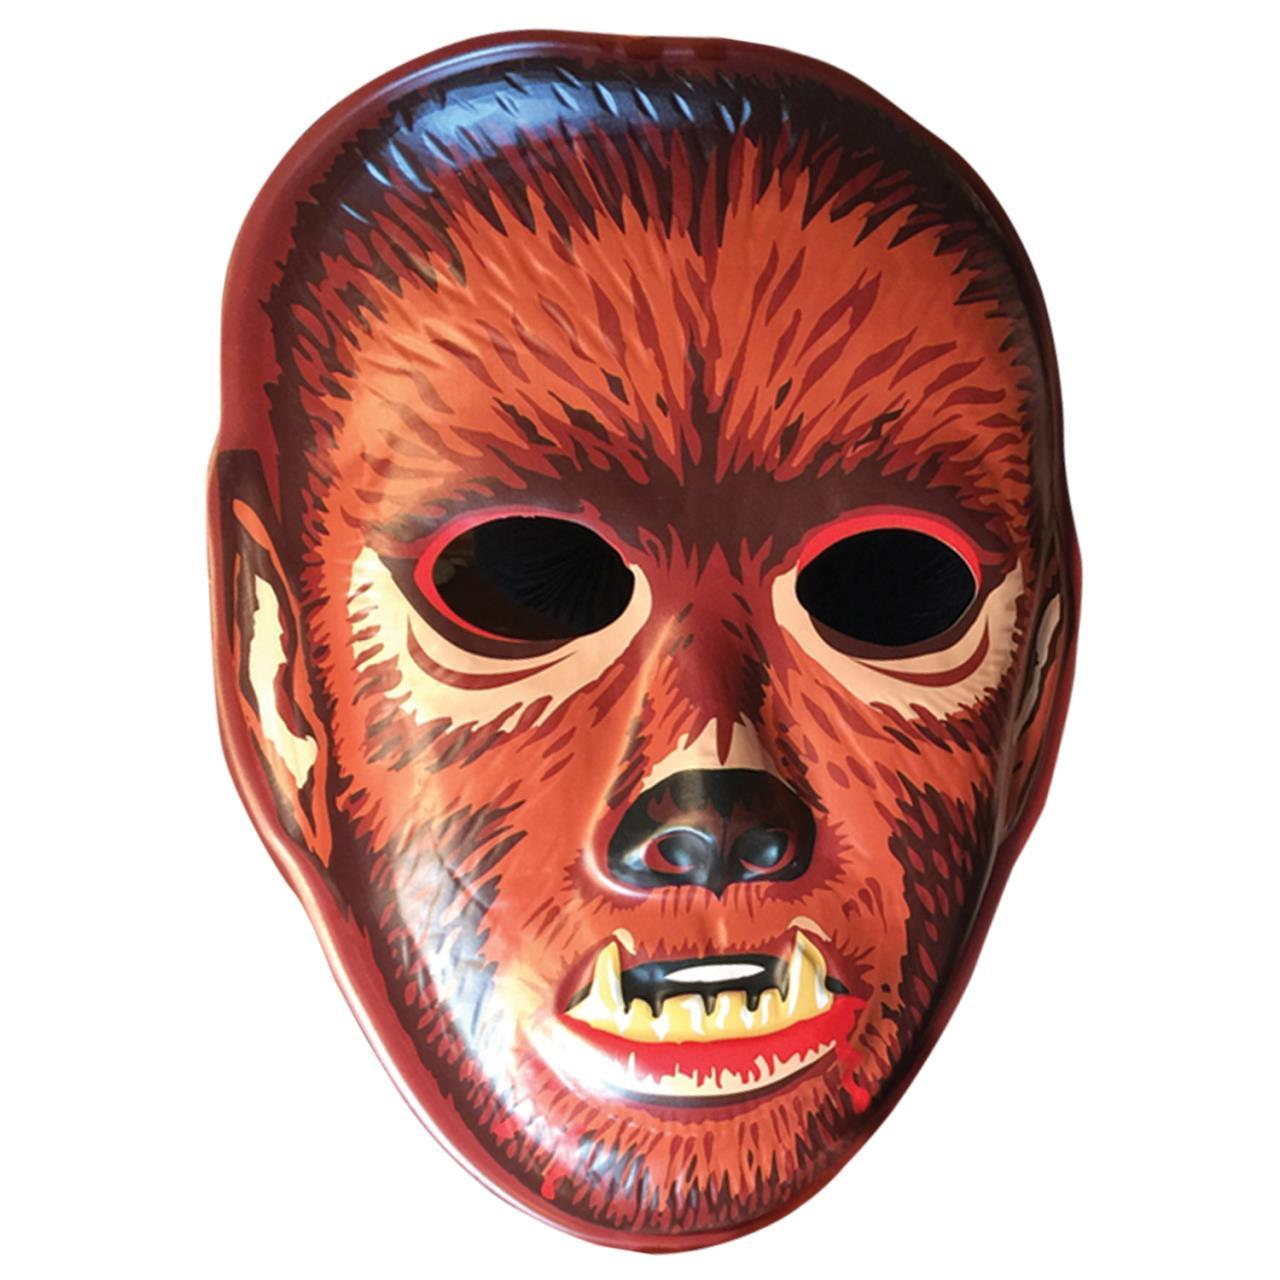 Bloody Werewolf Vac Tastic Plastic Mask Wall Decor Retired